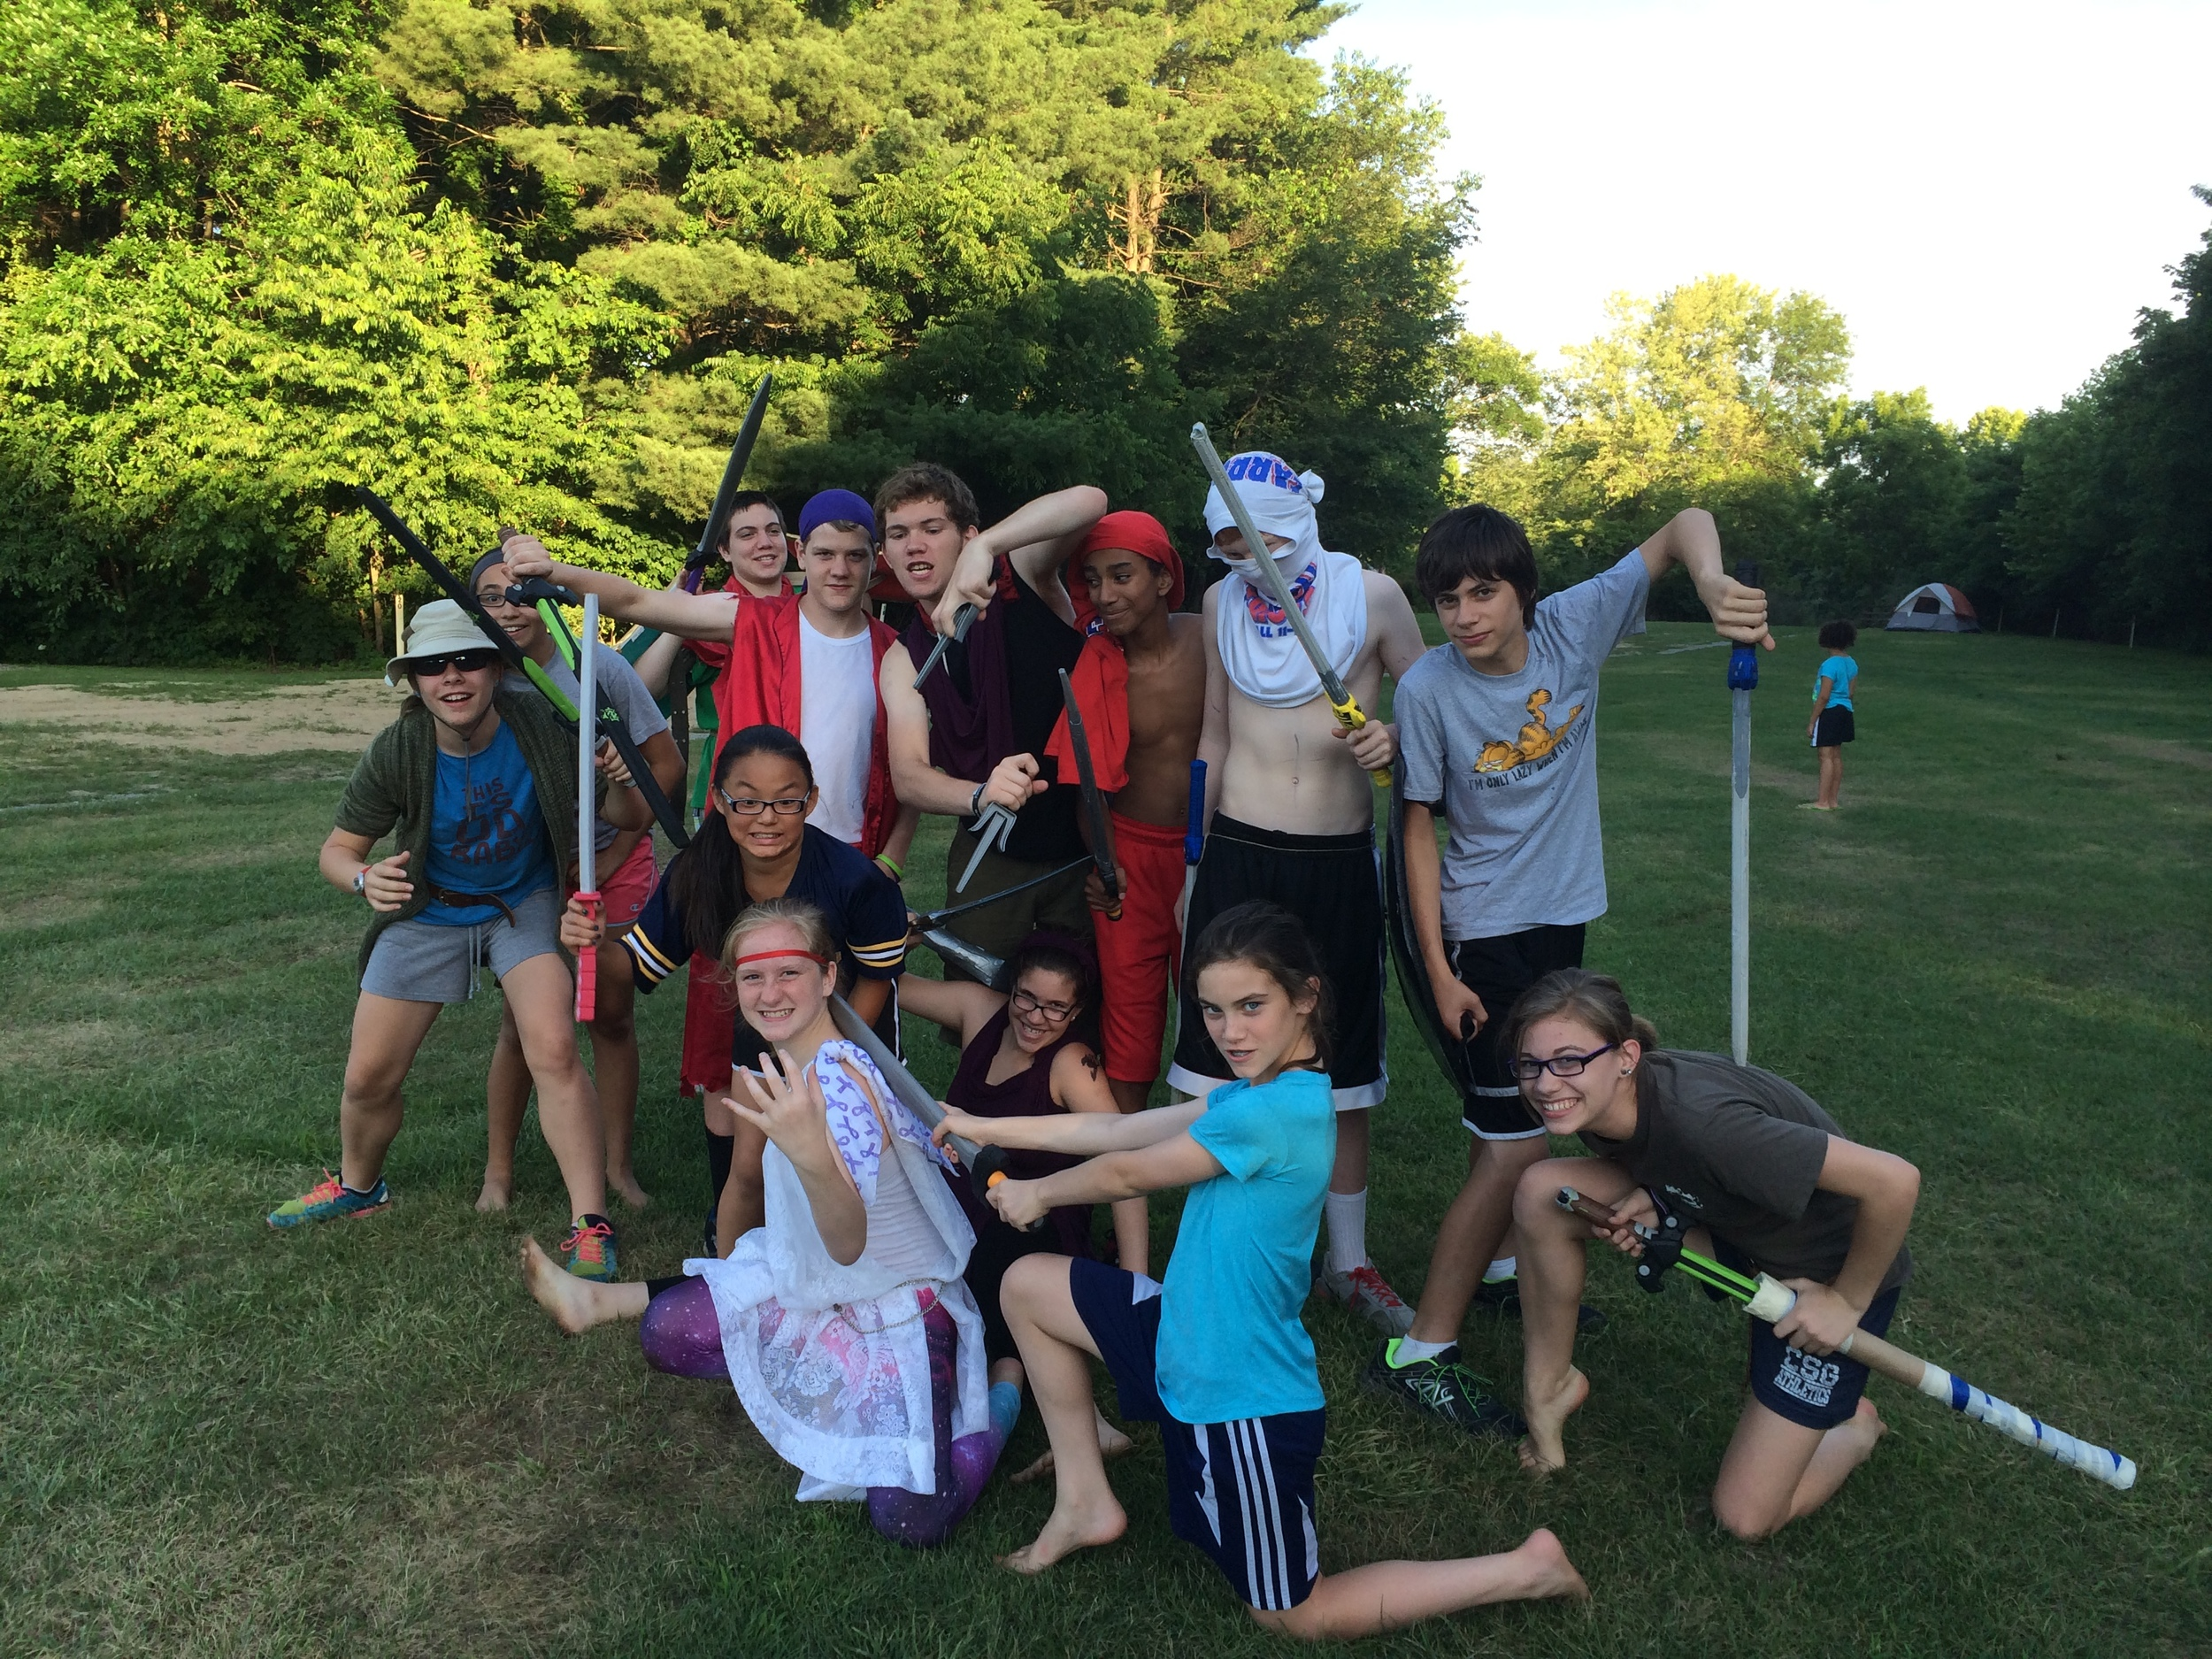 The kids LARPing, family campout 2014